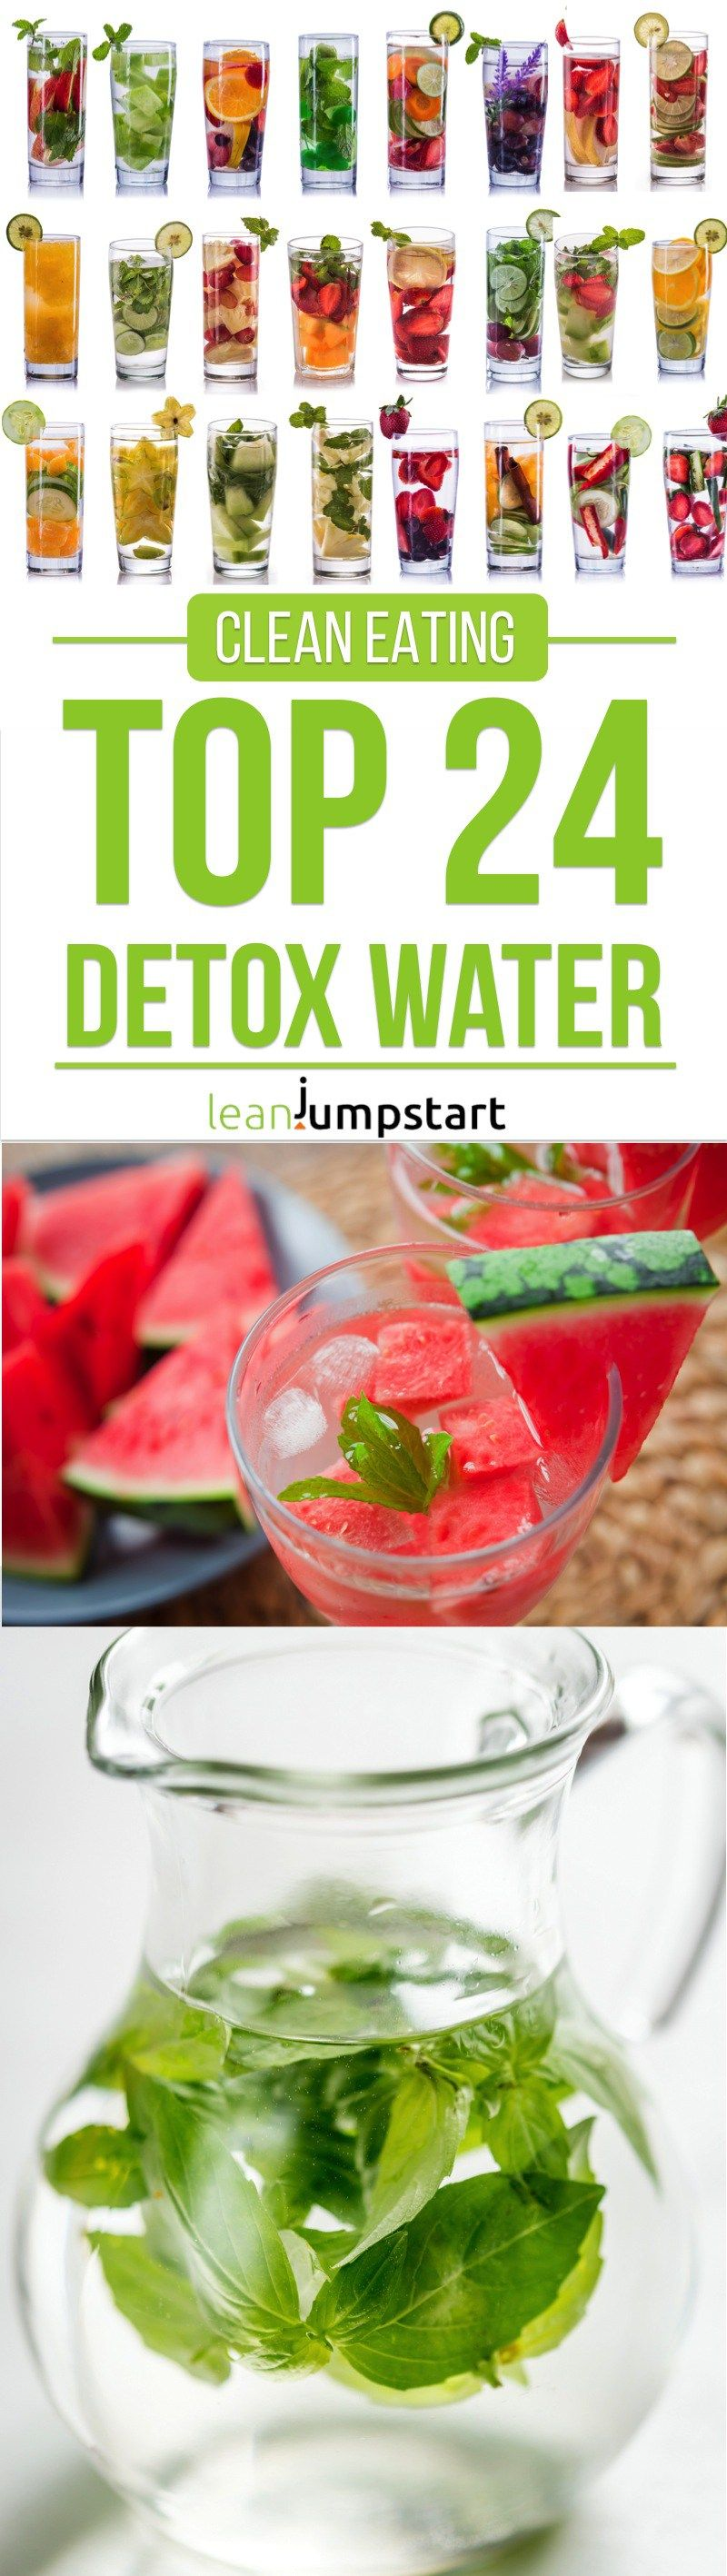 Watch Detox Water: The Top 25 Recipes for Fast Weight Loss video